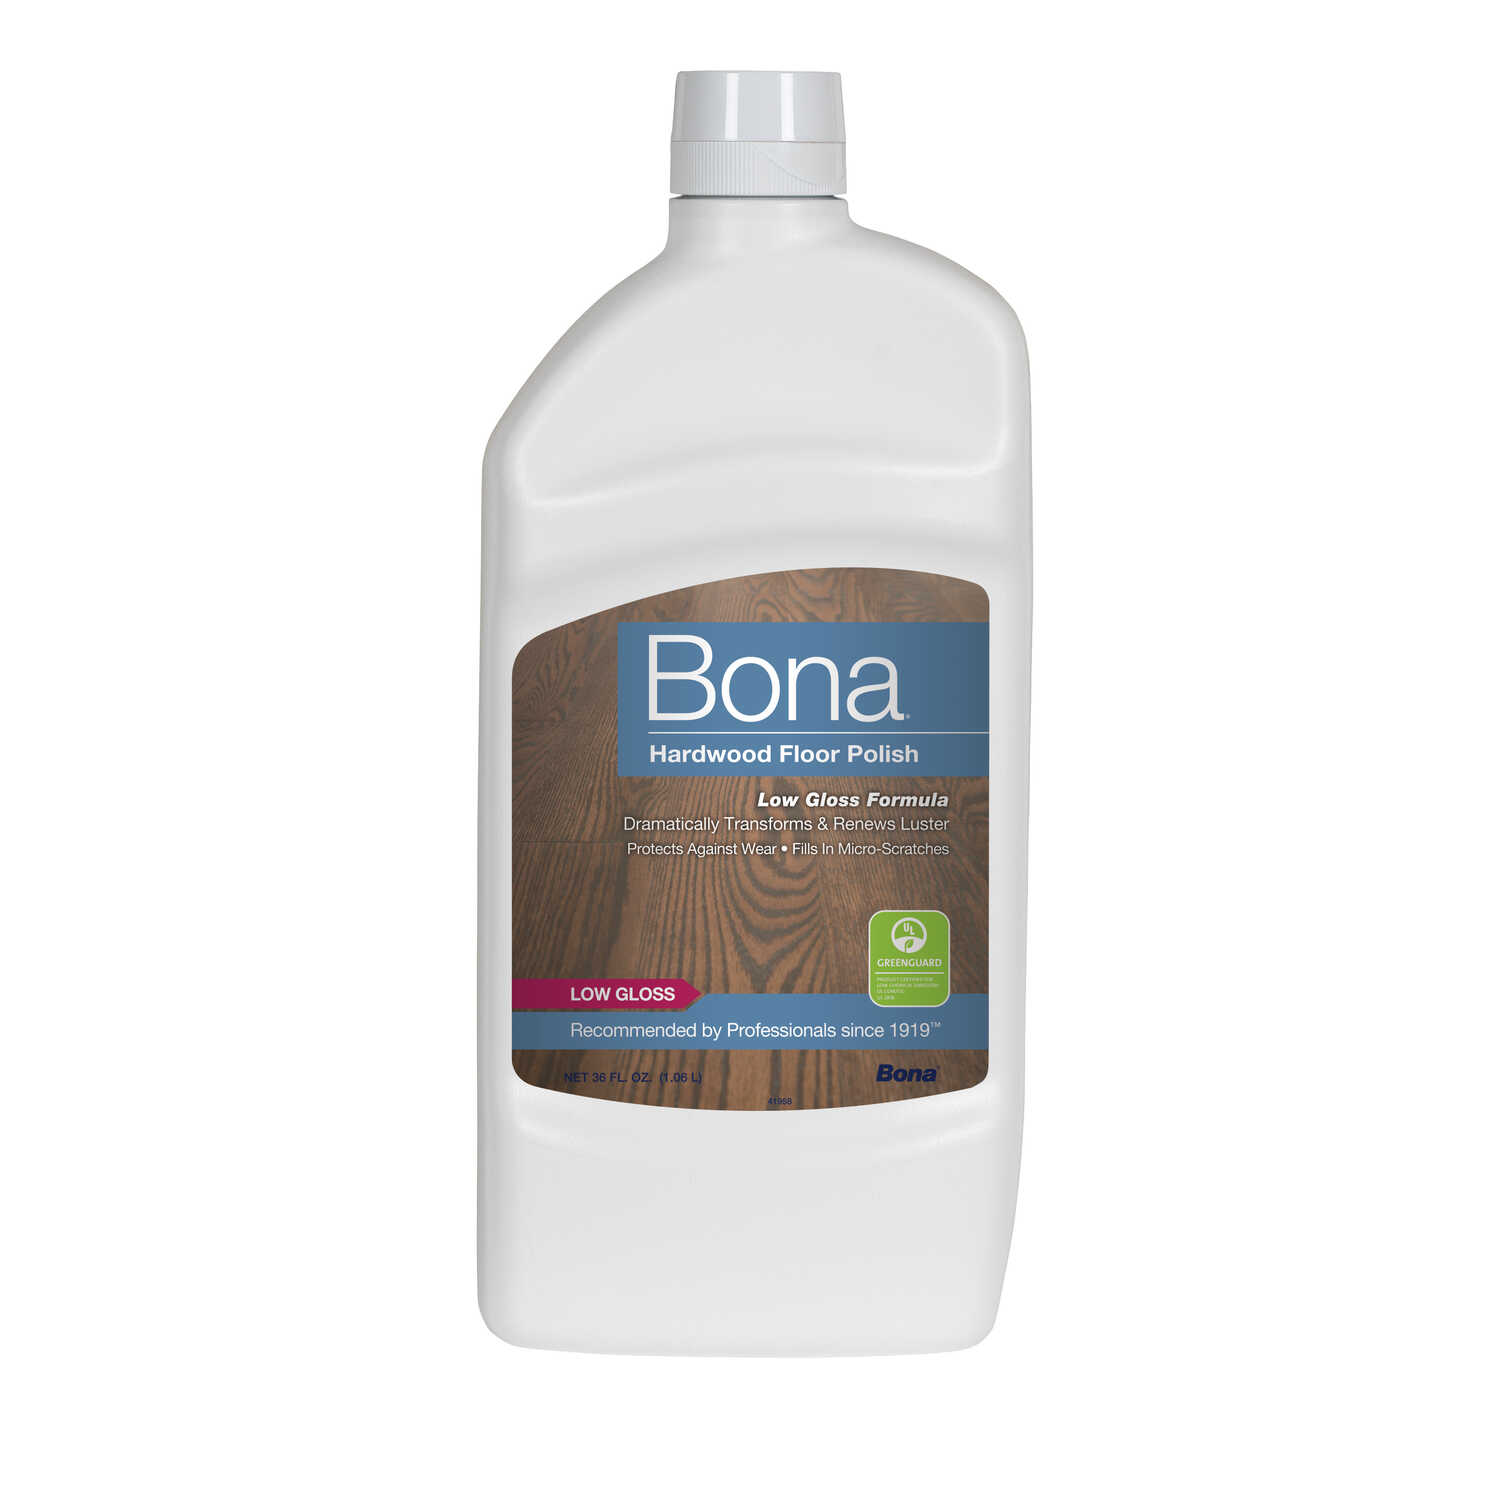 Bona  Low Gloss  Hardwood Floor Polish  Liquid  36 oz.